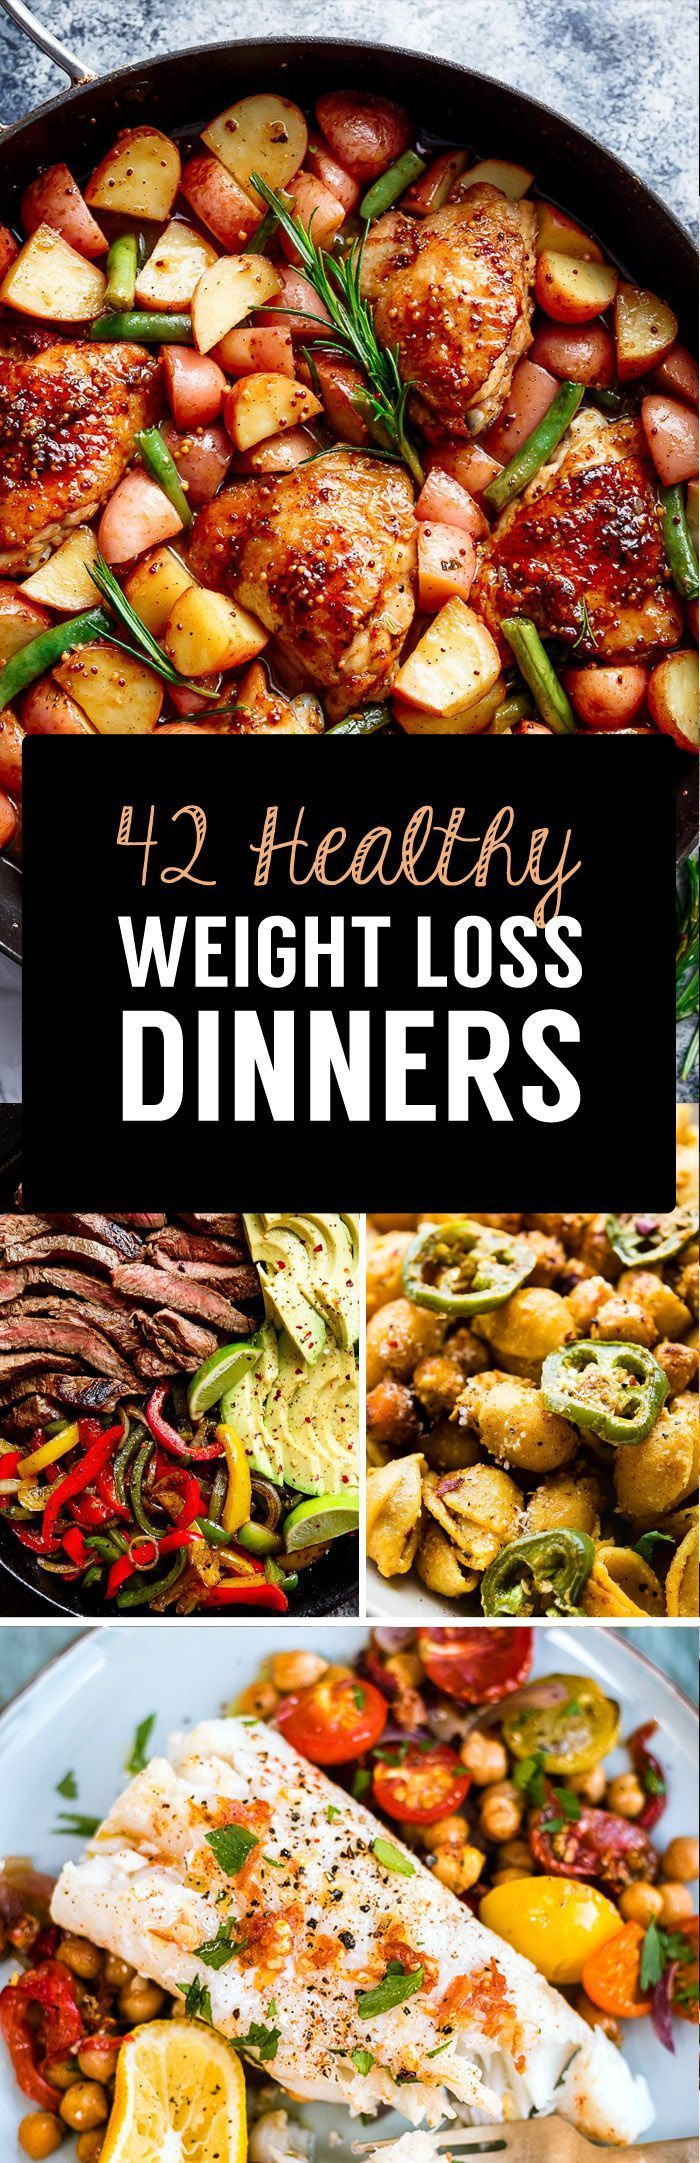 Delicious meals make losing weight fast and simple. If you enjoy the food you are sitting down to, it makes sticking to a healthy, calorie controlled lifestyle a lot easier and if you are consistent w